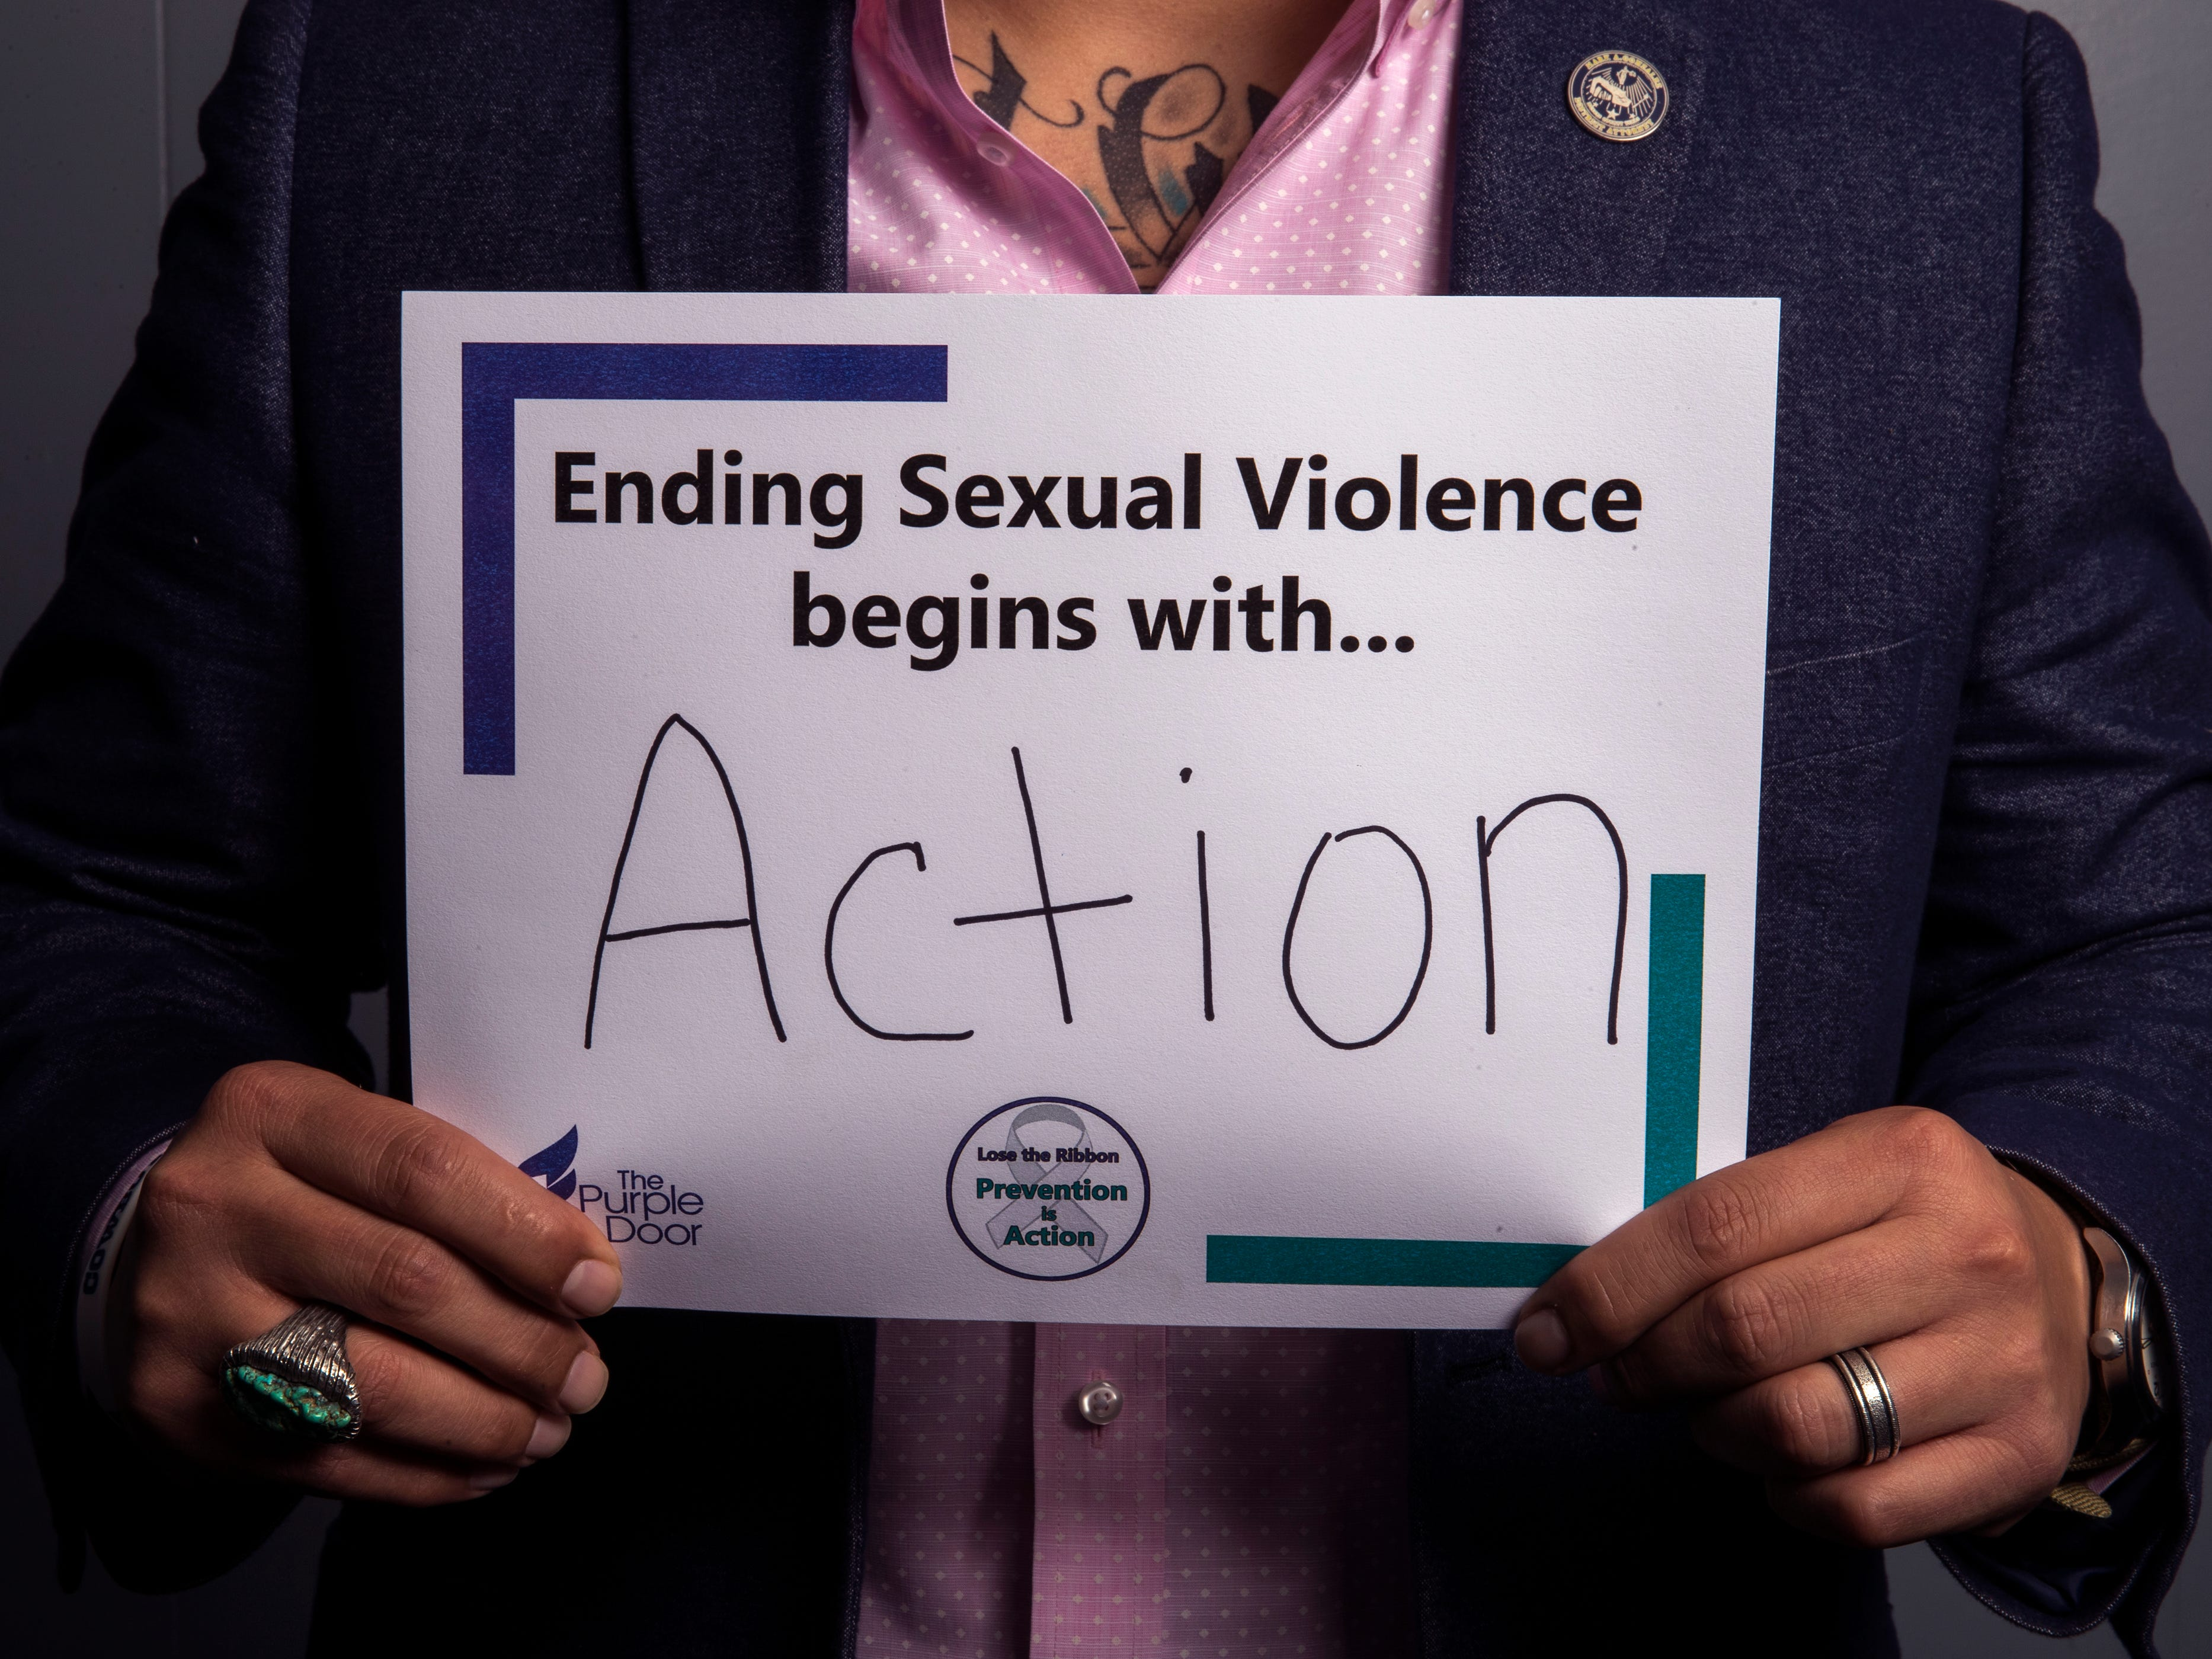 Mark Gonzalez, District Attorney for Nueces County, has pledged to take action through his office by prosecuting offenders. He is one of several people to participate in The Purple Door's campaign for April's Sexual Assault Awareness Month, which encourages people to take action against sexual assault and violence.